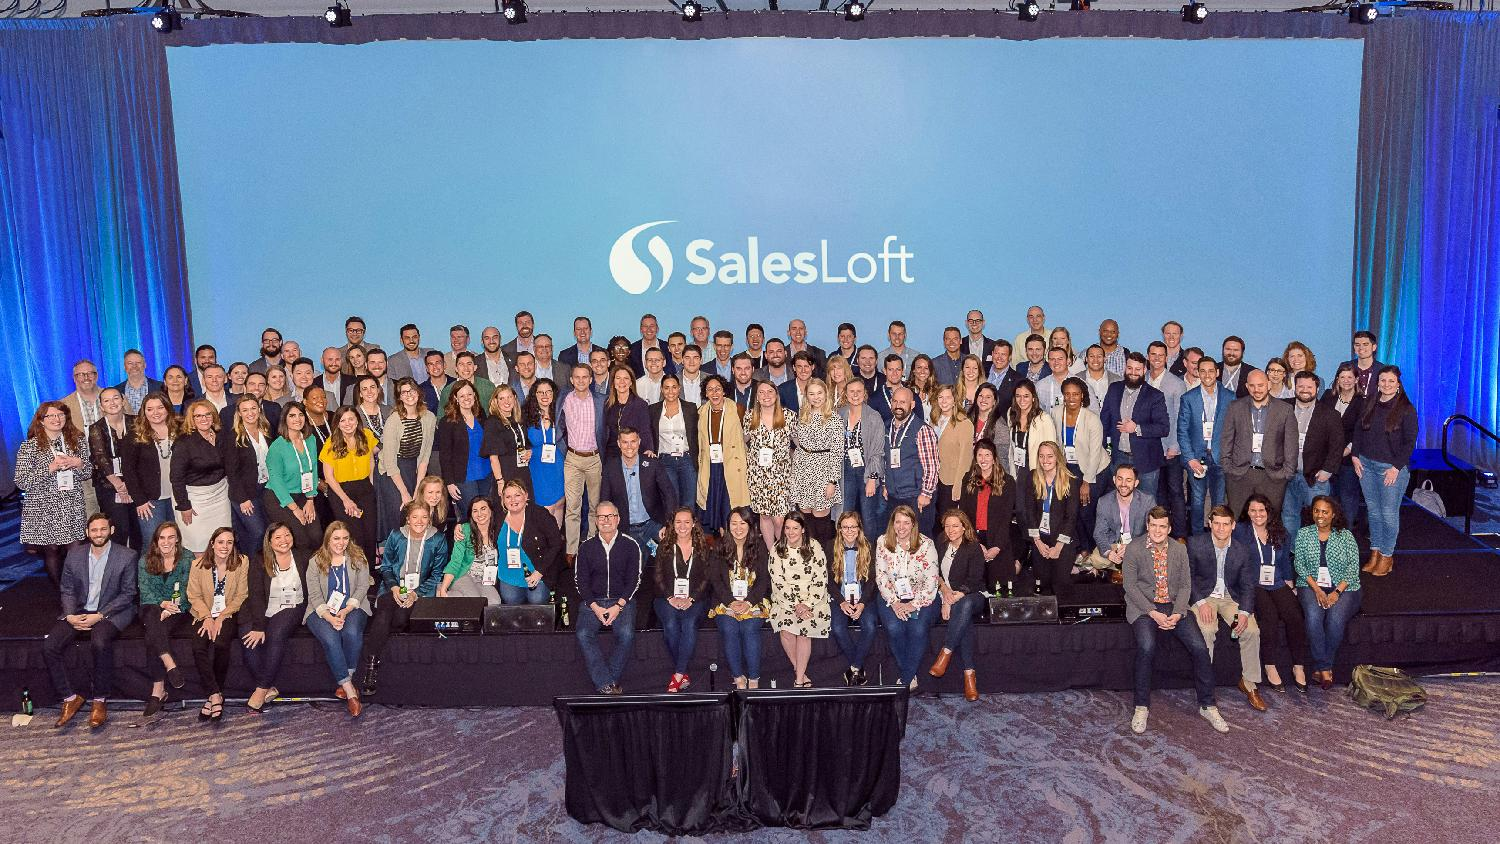 SalesLoft Photo